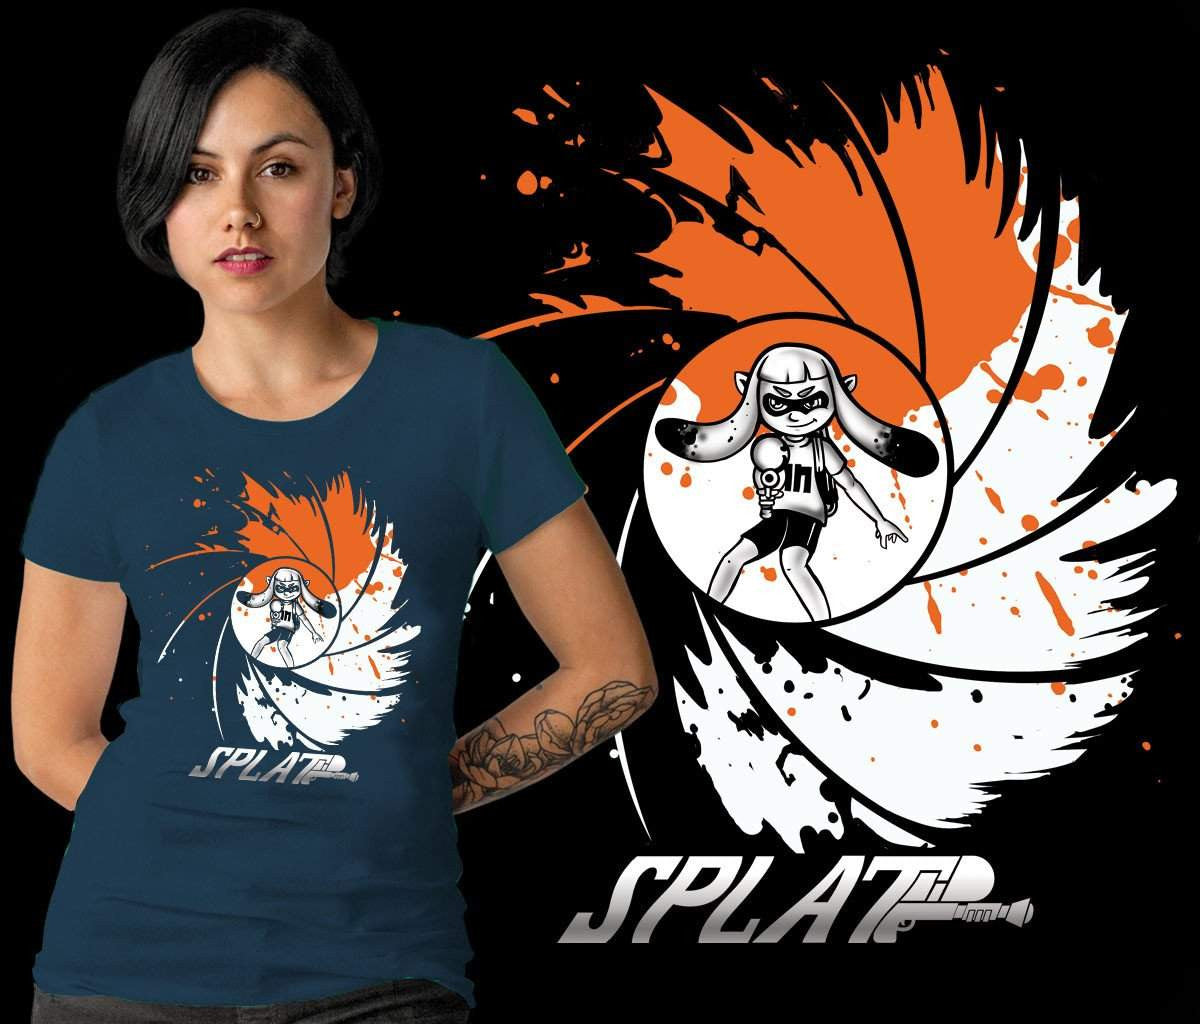 00 Splat-Gaming Shirts-Creative Outpouring|Threadiverse